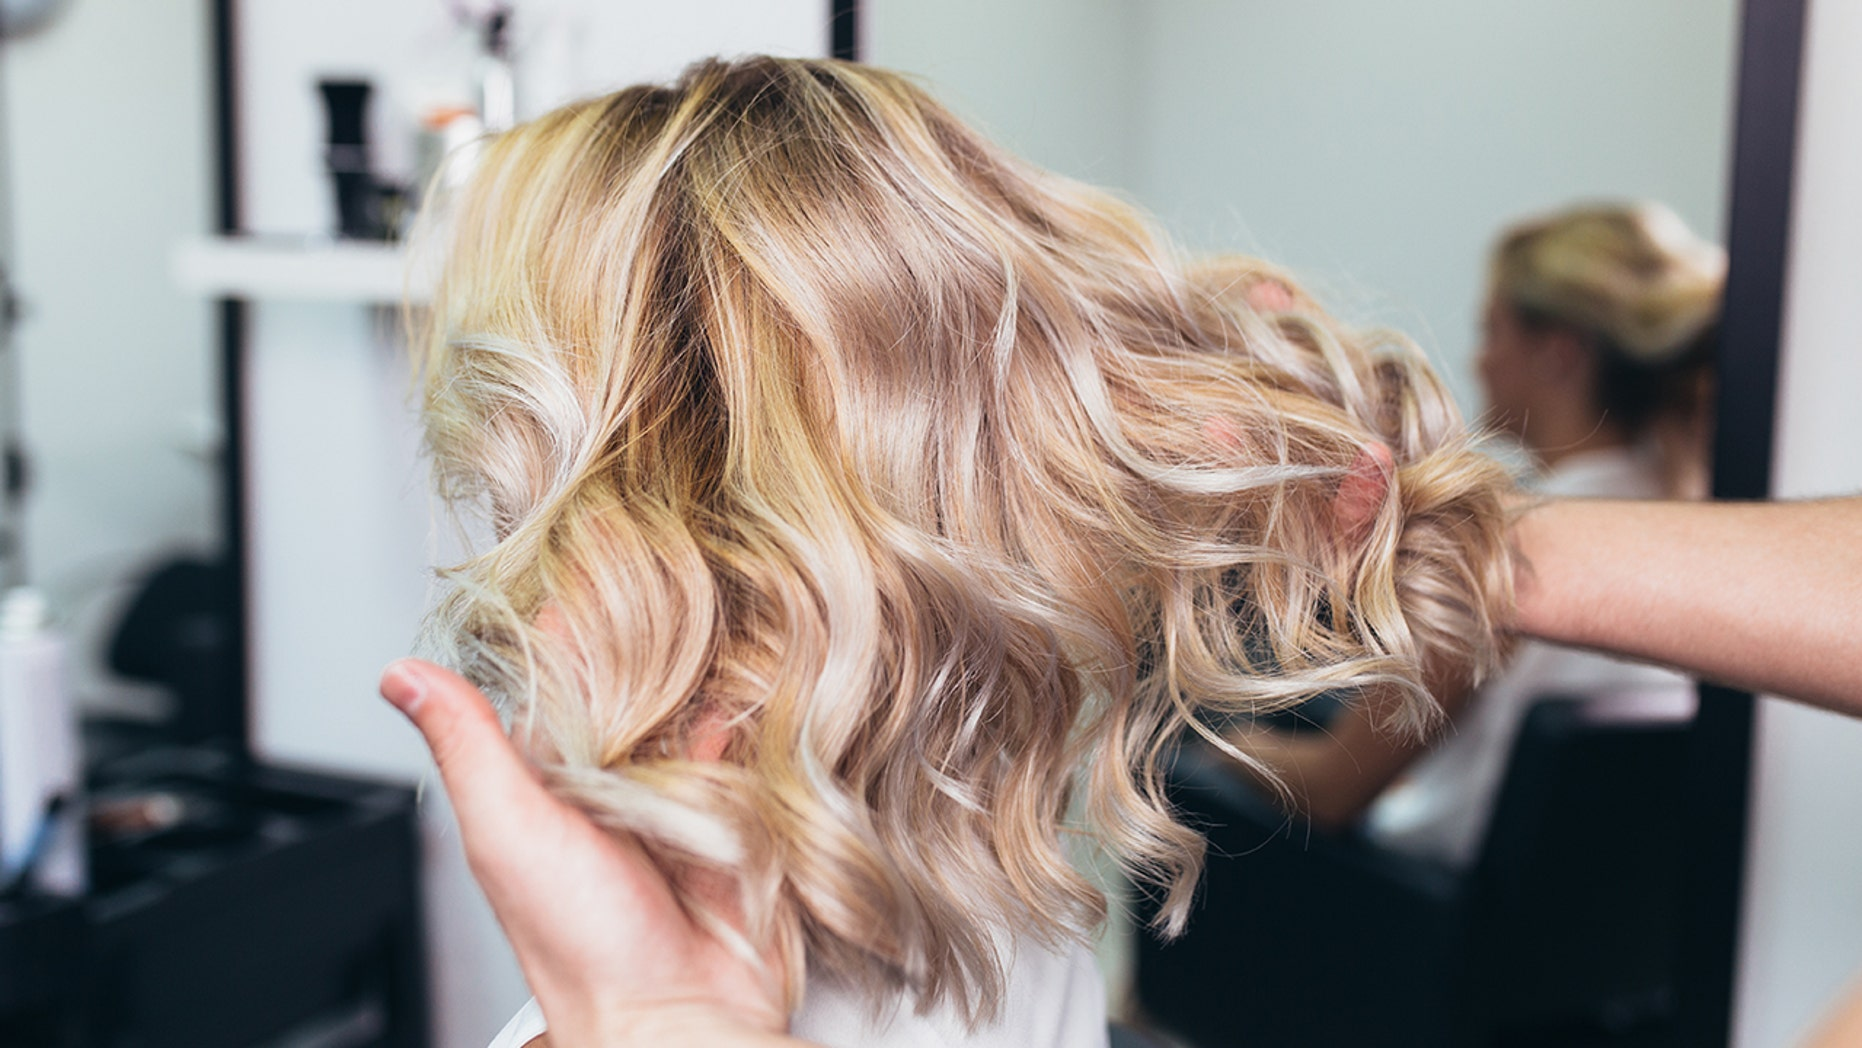 What color is better to lighten your hair